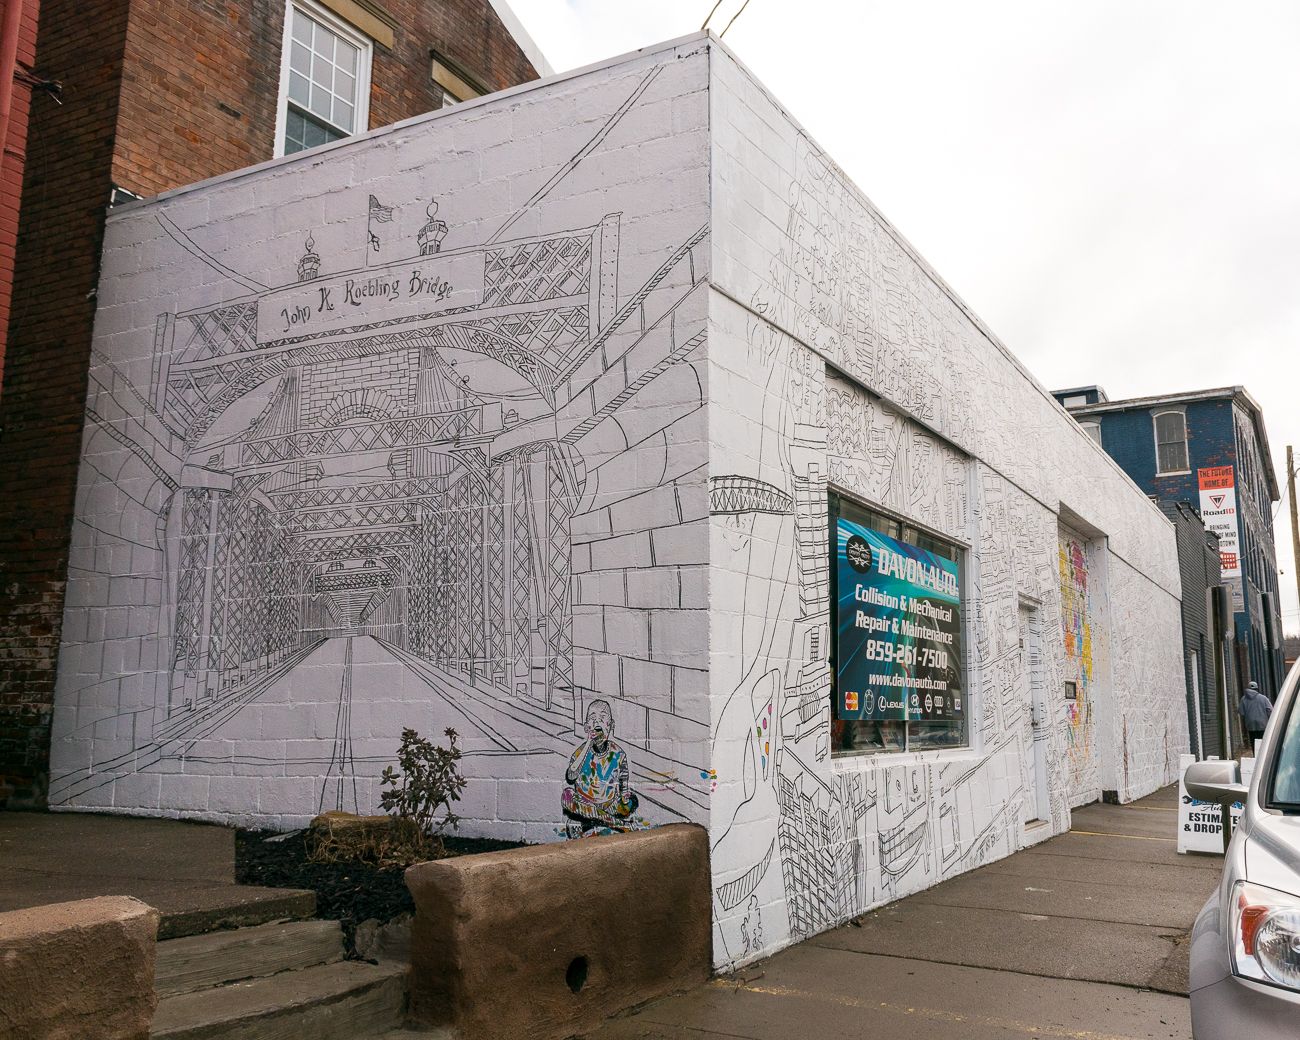 'You Are Here' mural: Phil Rowland's map of Covington mural on West 8th Street. / Image: Phil Armstrong, Cincinnati Refined // Published: 1.24.18